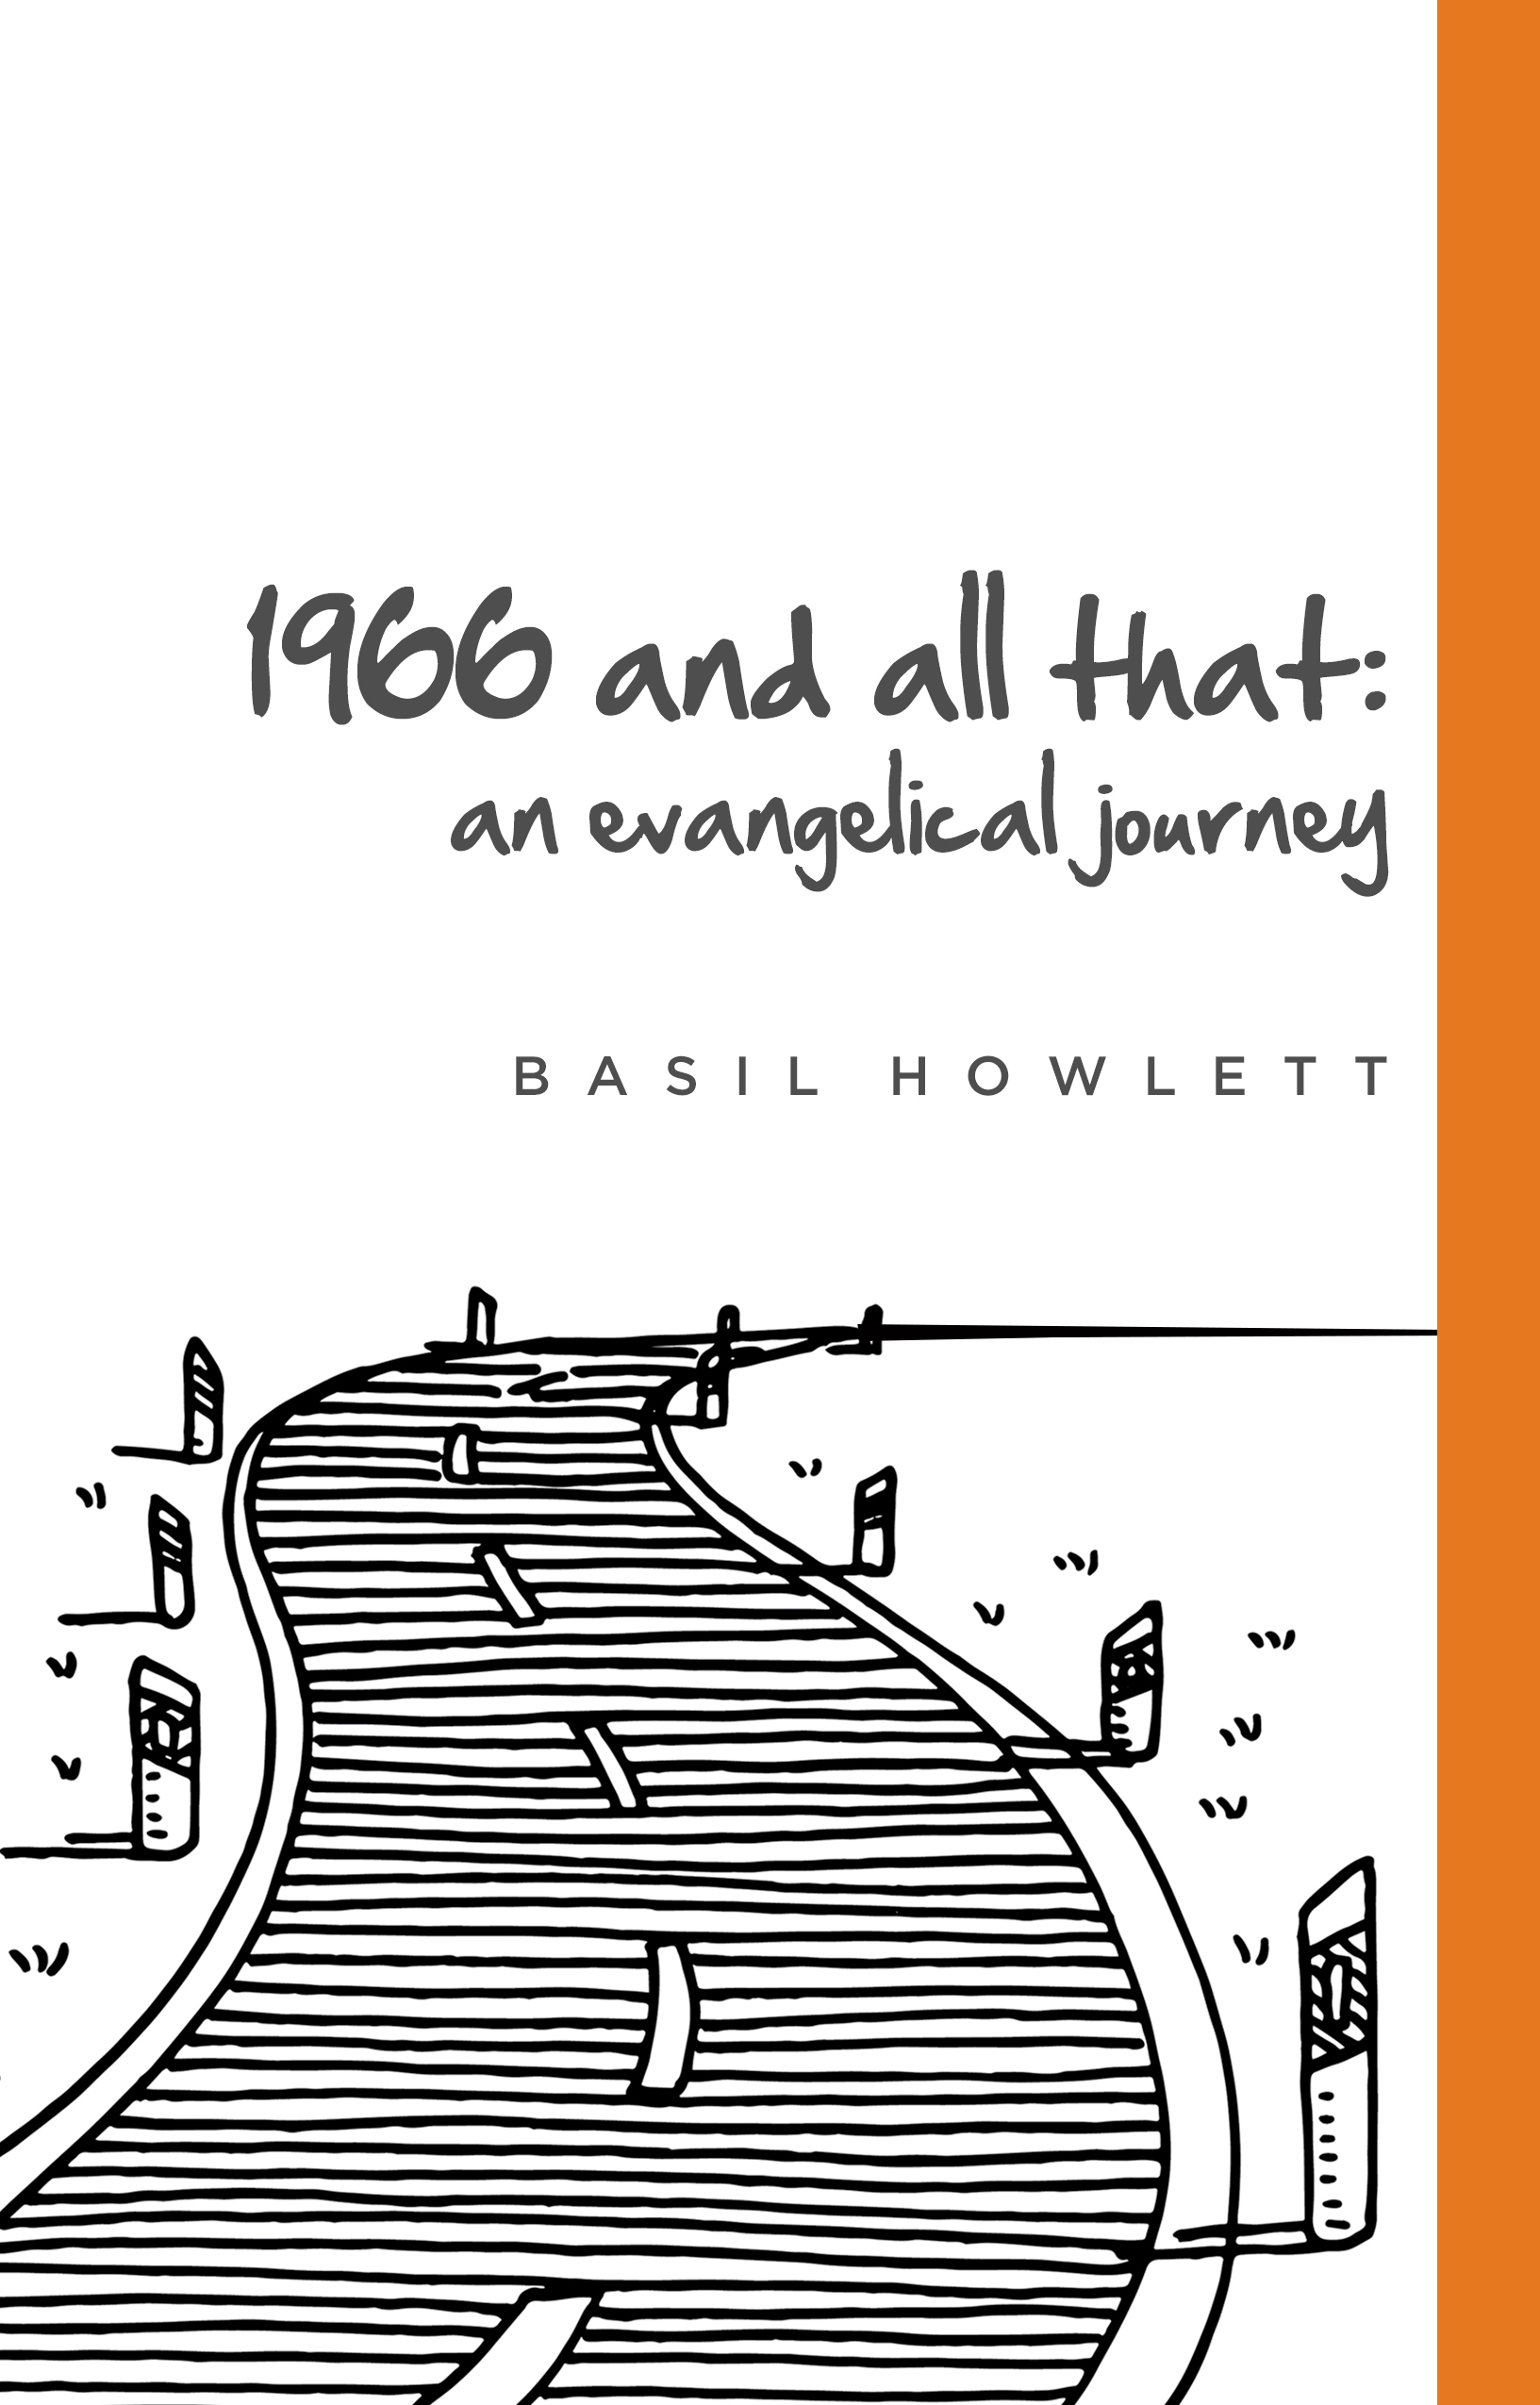 Ep Books The Store For Books: 1966 And All That: An Evangelical Journey By Basil Howlett